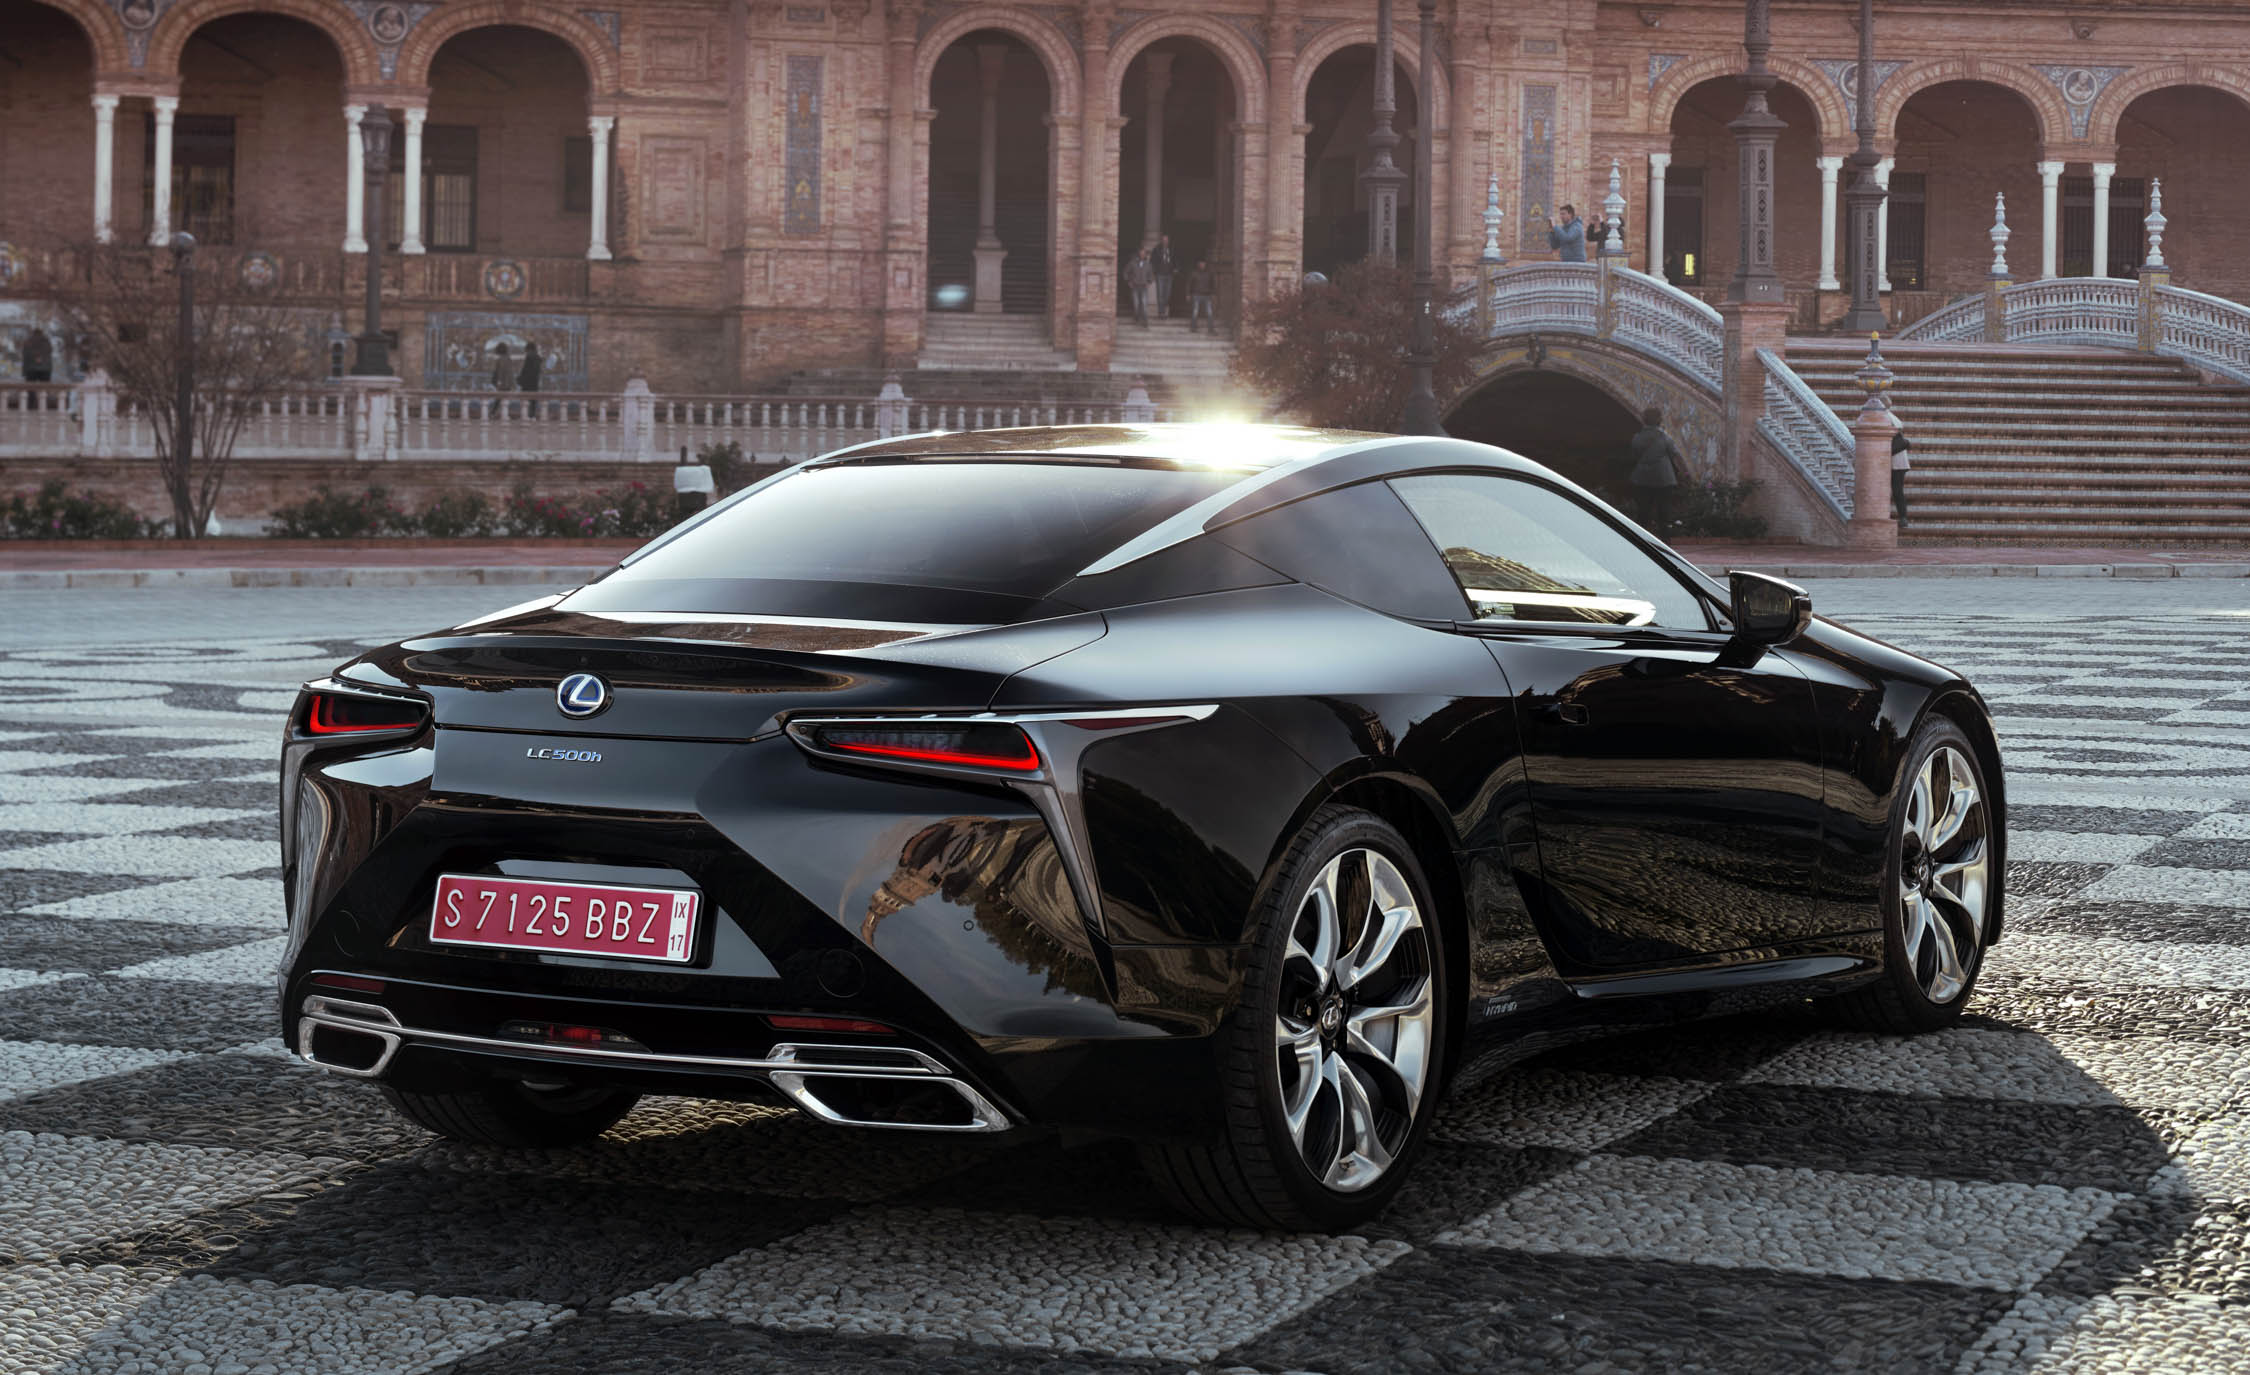 2018 Lexus Lc 500h Black Exterior Rear And Side (View 57 of 84)